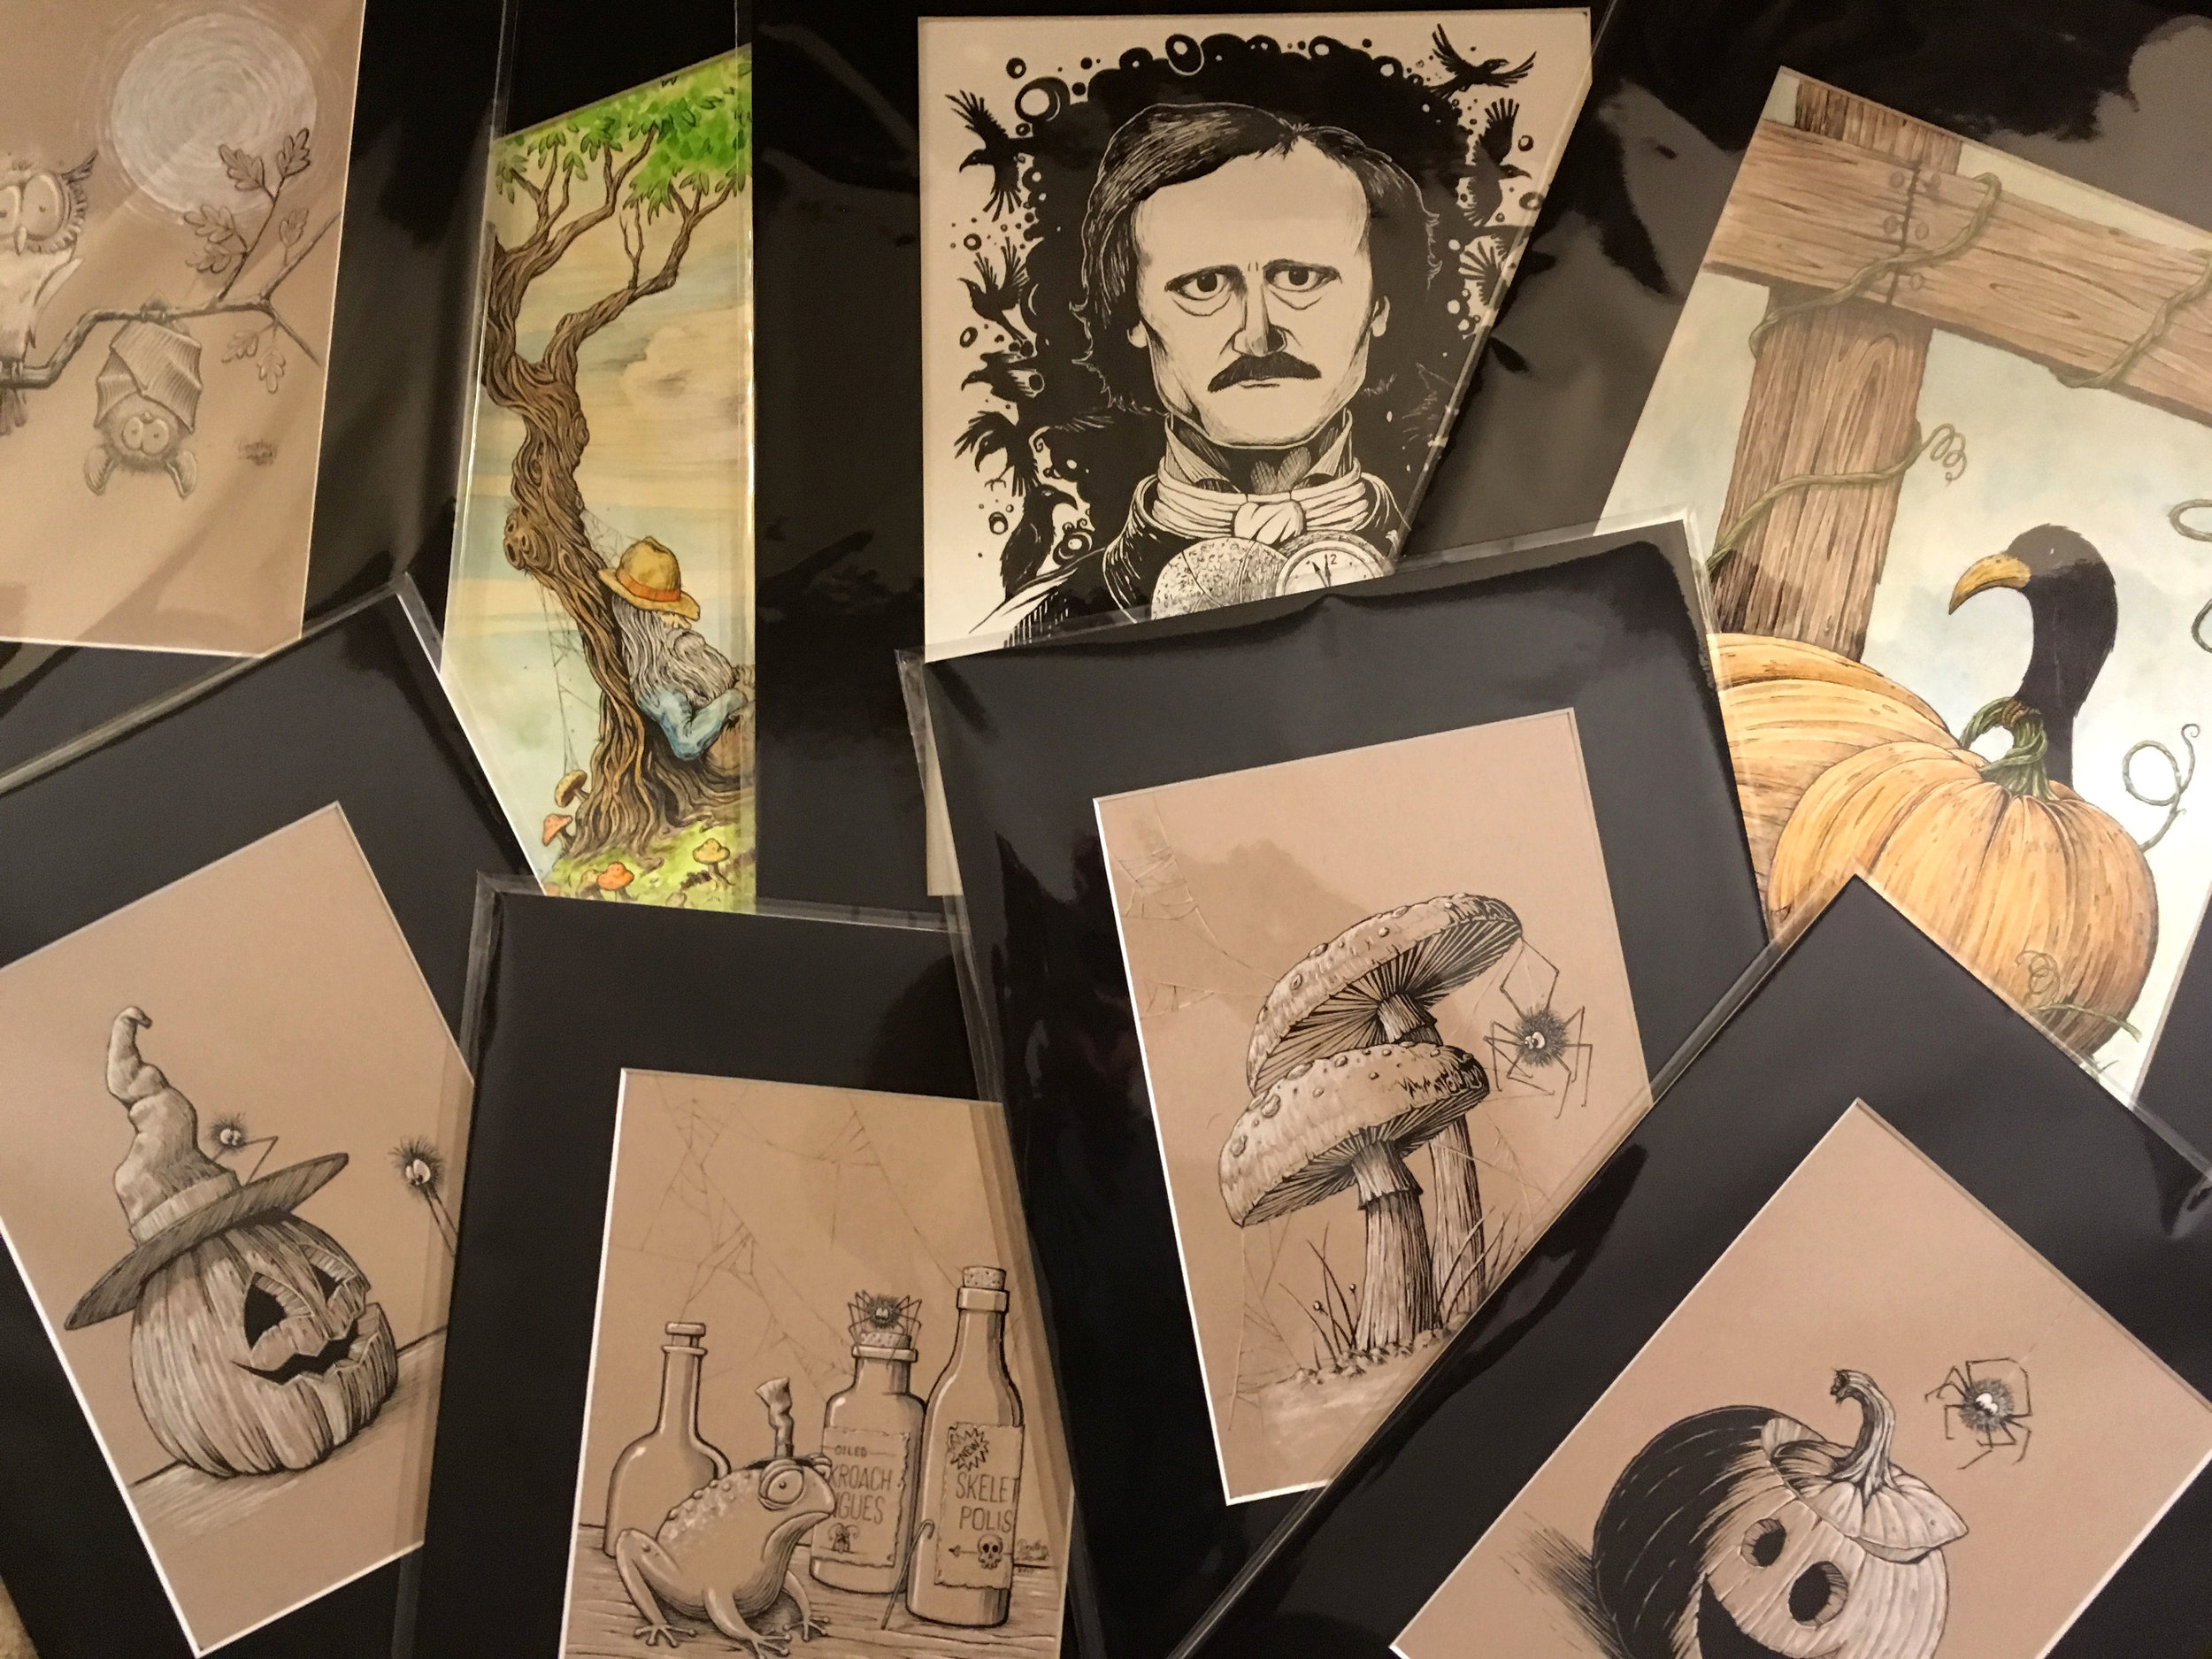 Sample photo of a selection of original art available for purchase.